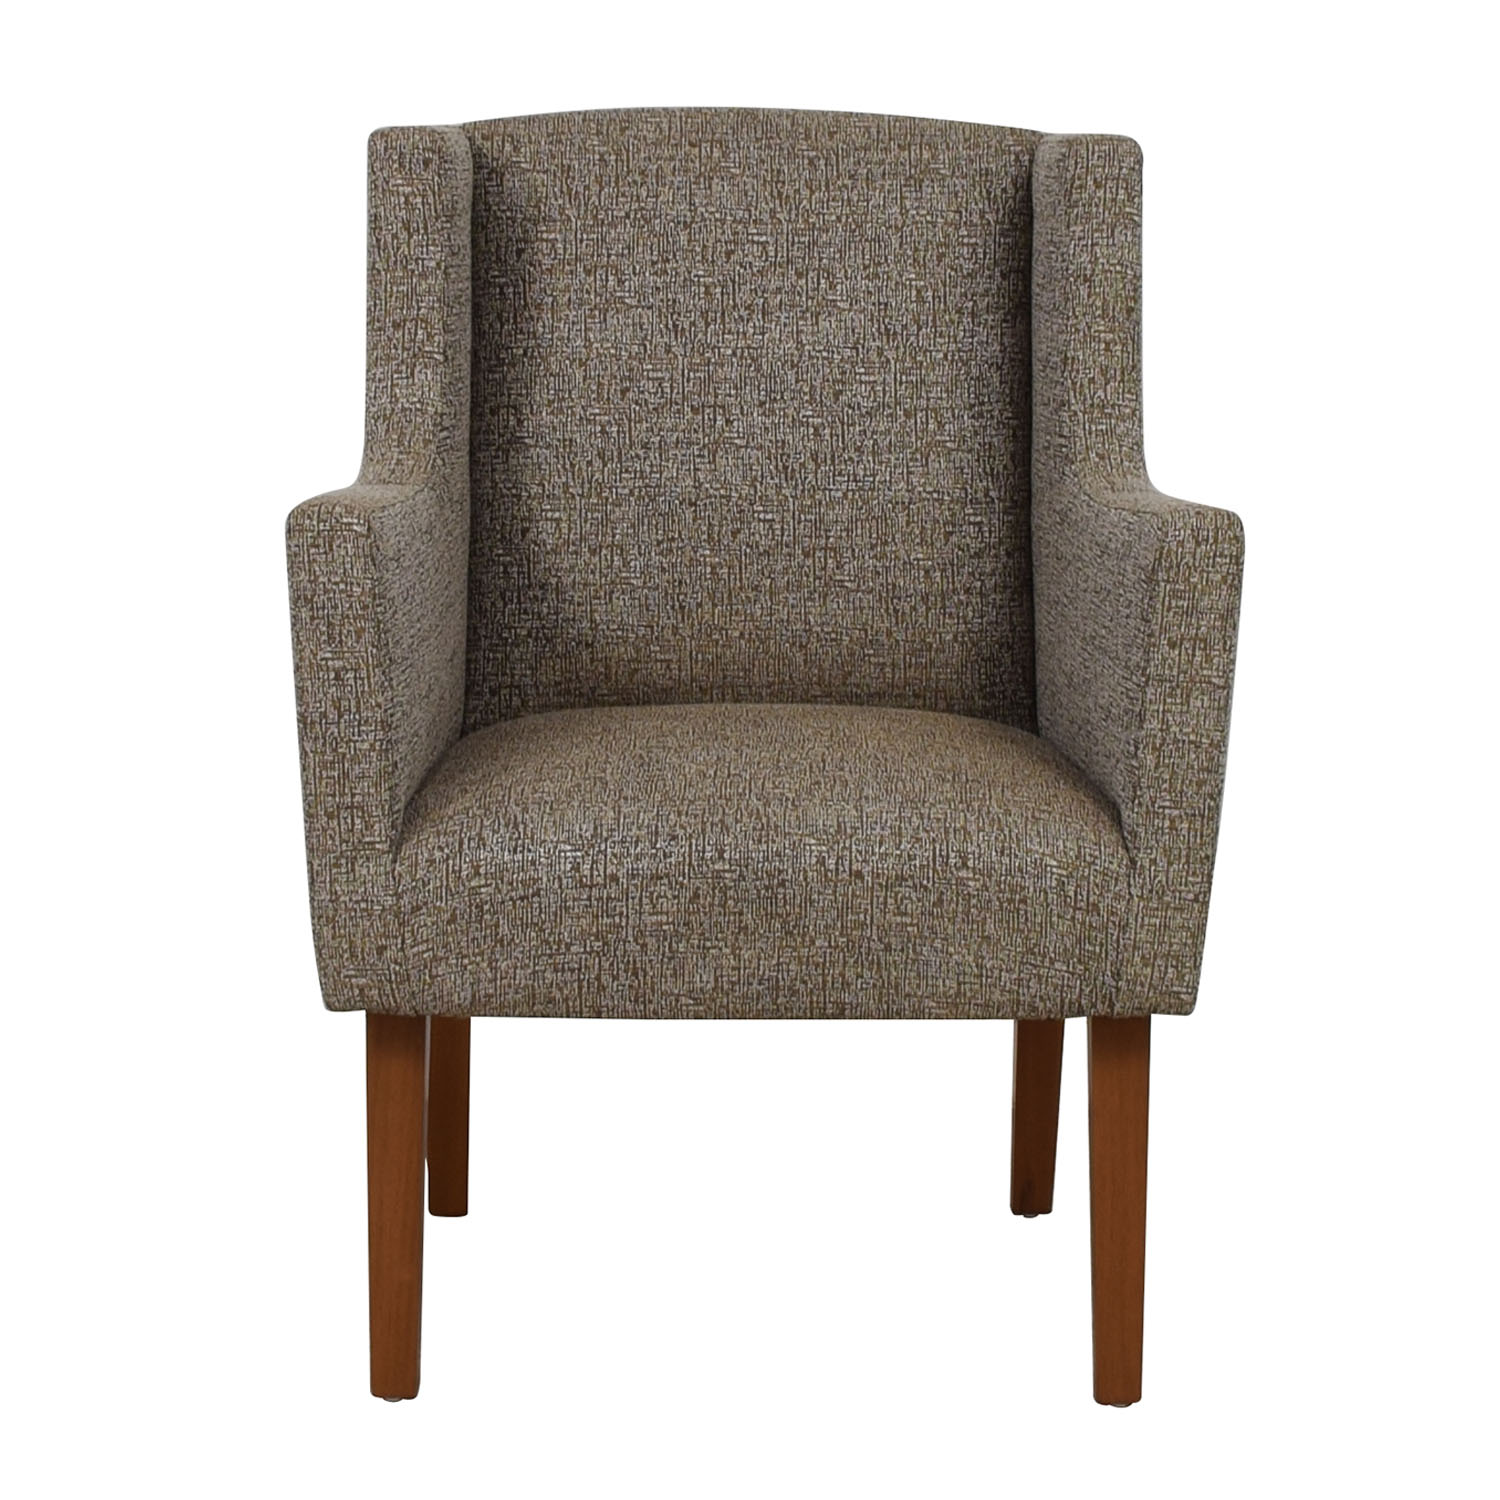 buy Furniture Masters Furniture Masters White and Gold Upholstered Accent Chair online